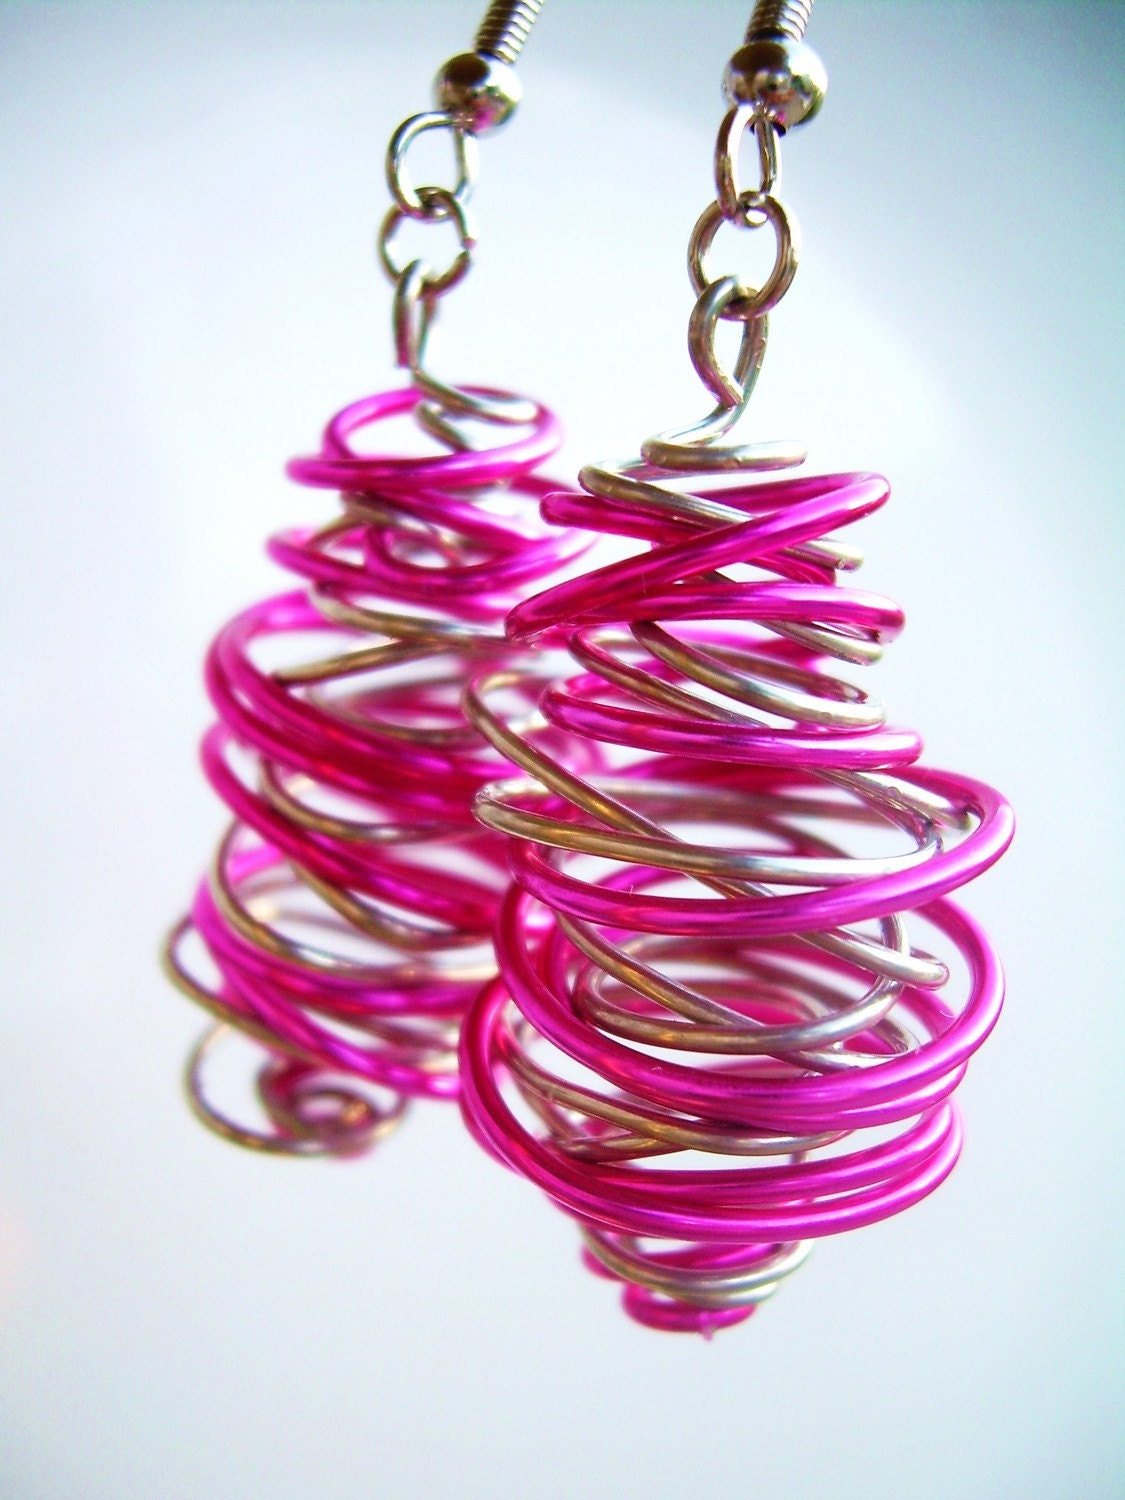 Quantum Squiggle Earrings - Pink/Silver